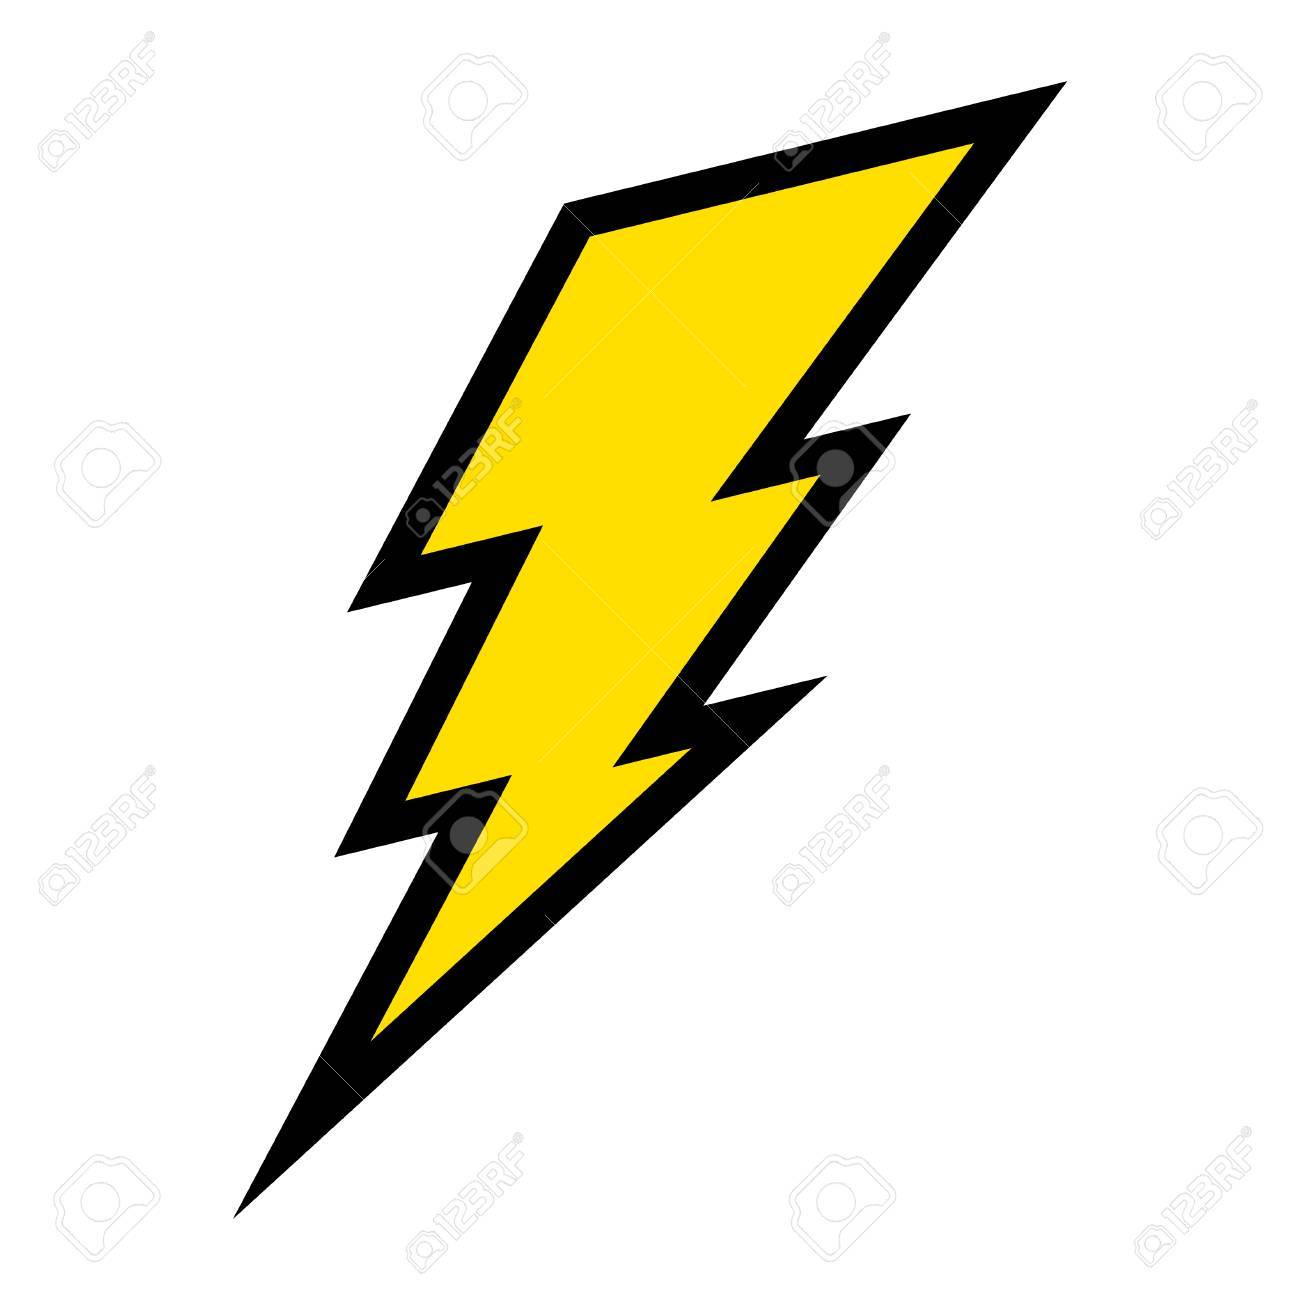 lightning bolt vector icon royalty free cliparts vectors and stock rh 123rf com vector lightning bolt free vector image of lightning bolt